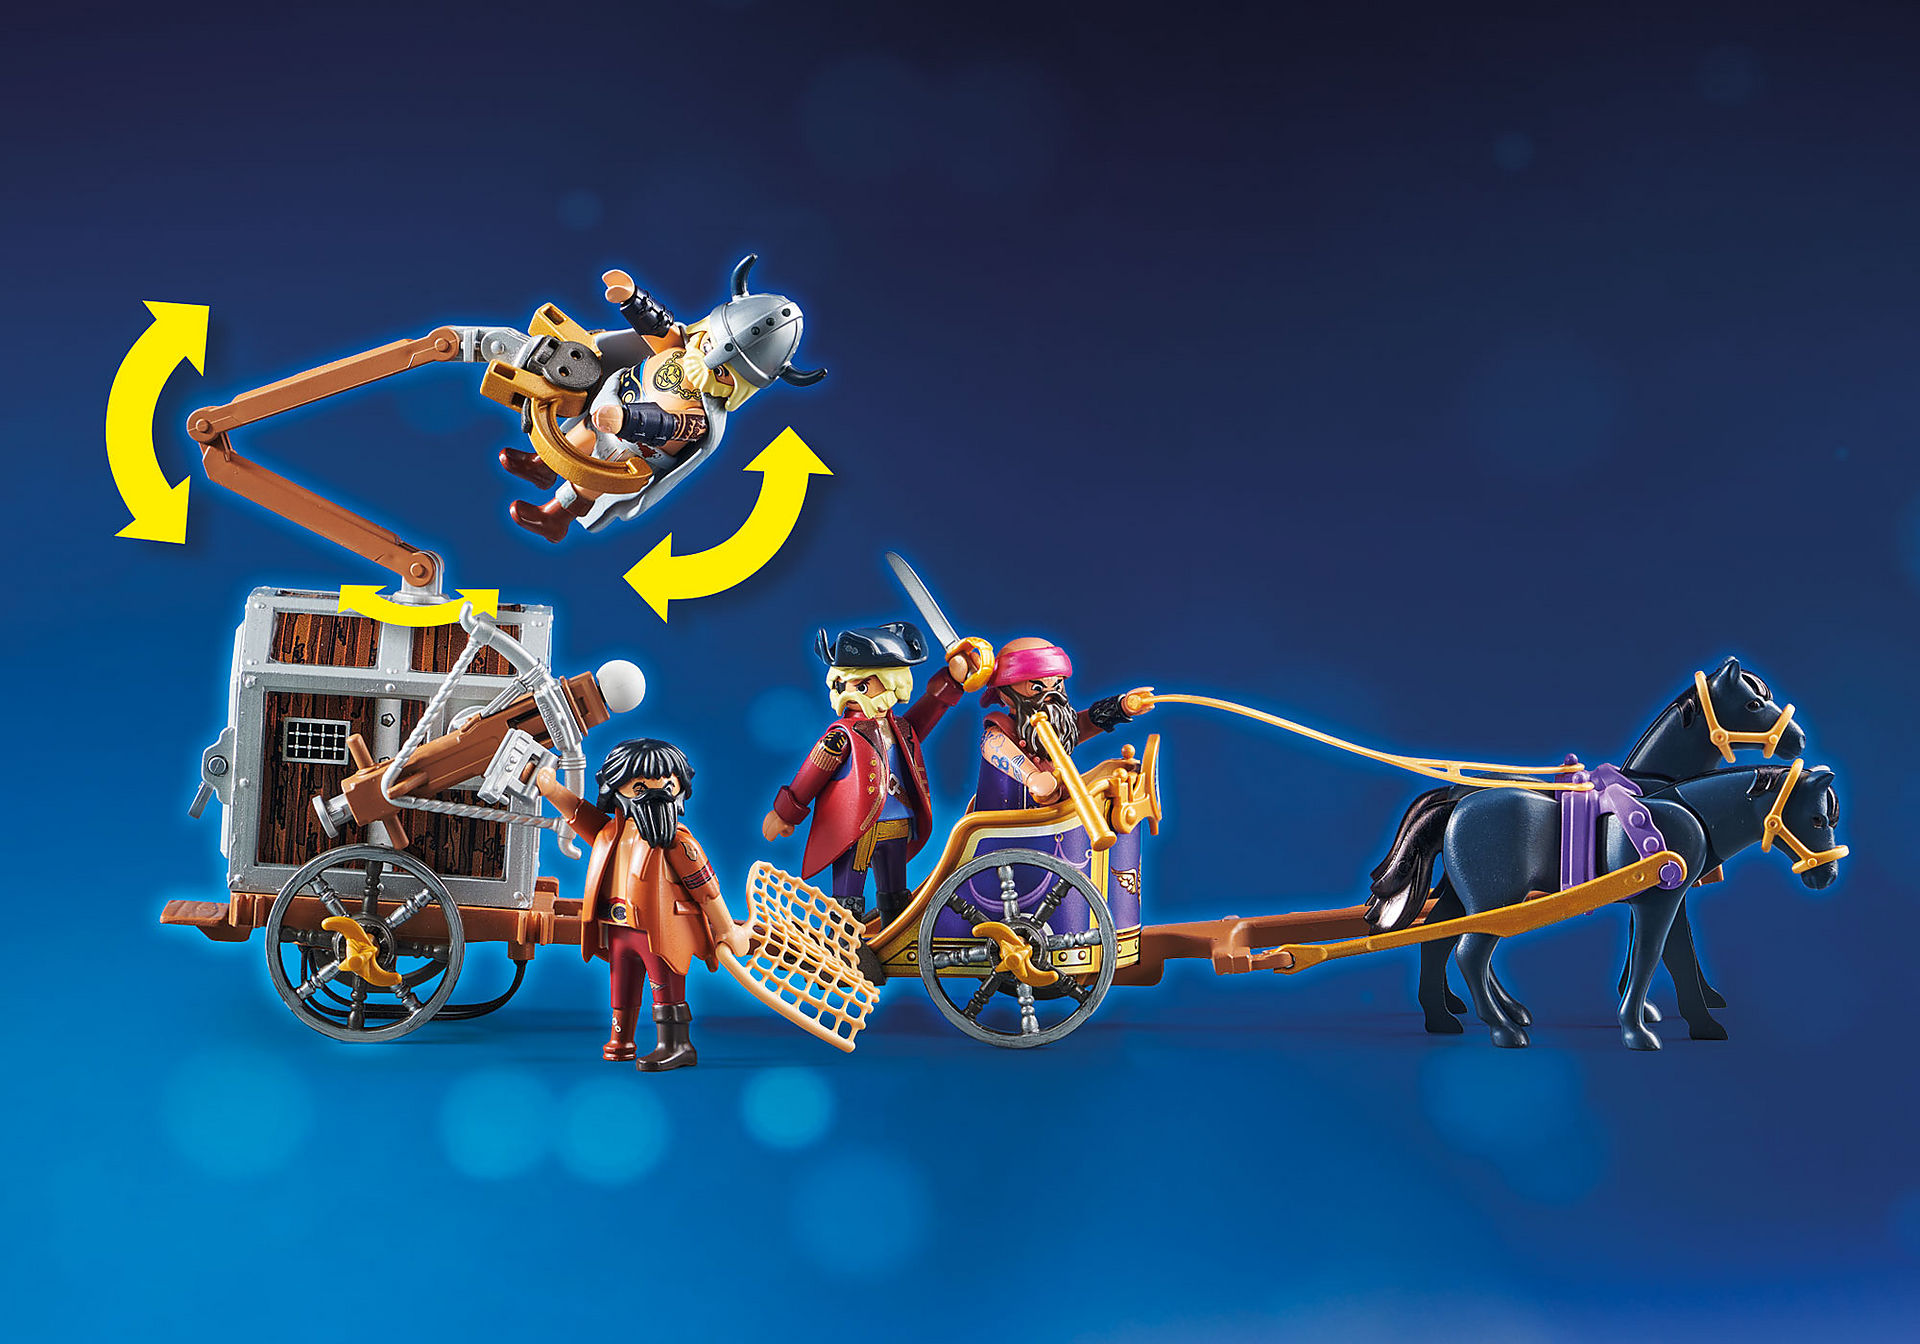 http://media.playmobil.com/i/playmobil/70073_product_extra3/PLAYMOBIL:THE MOVIE Charlie with Prison Wagon